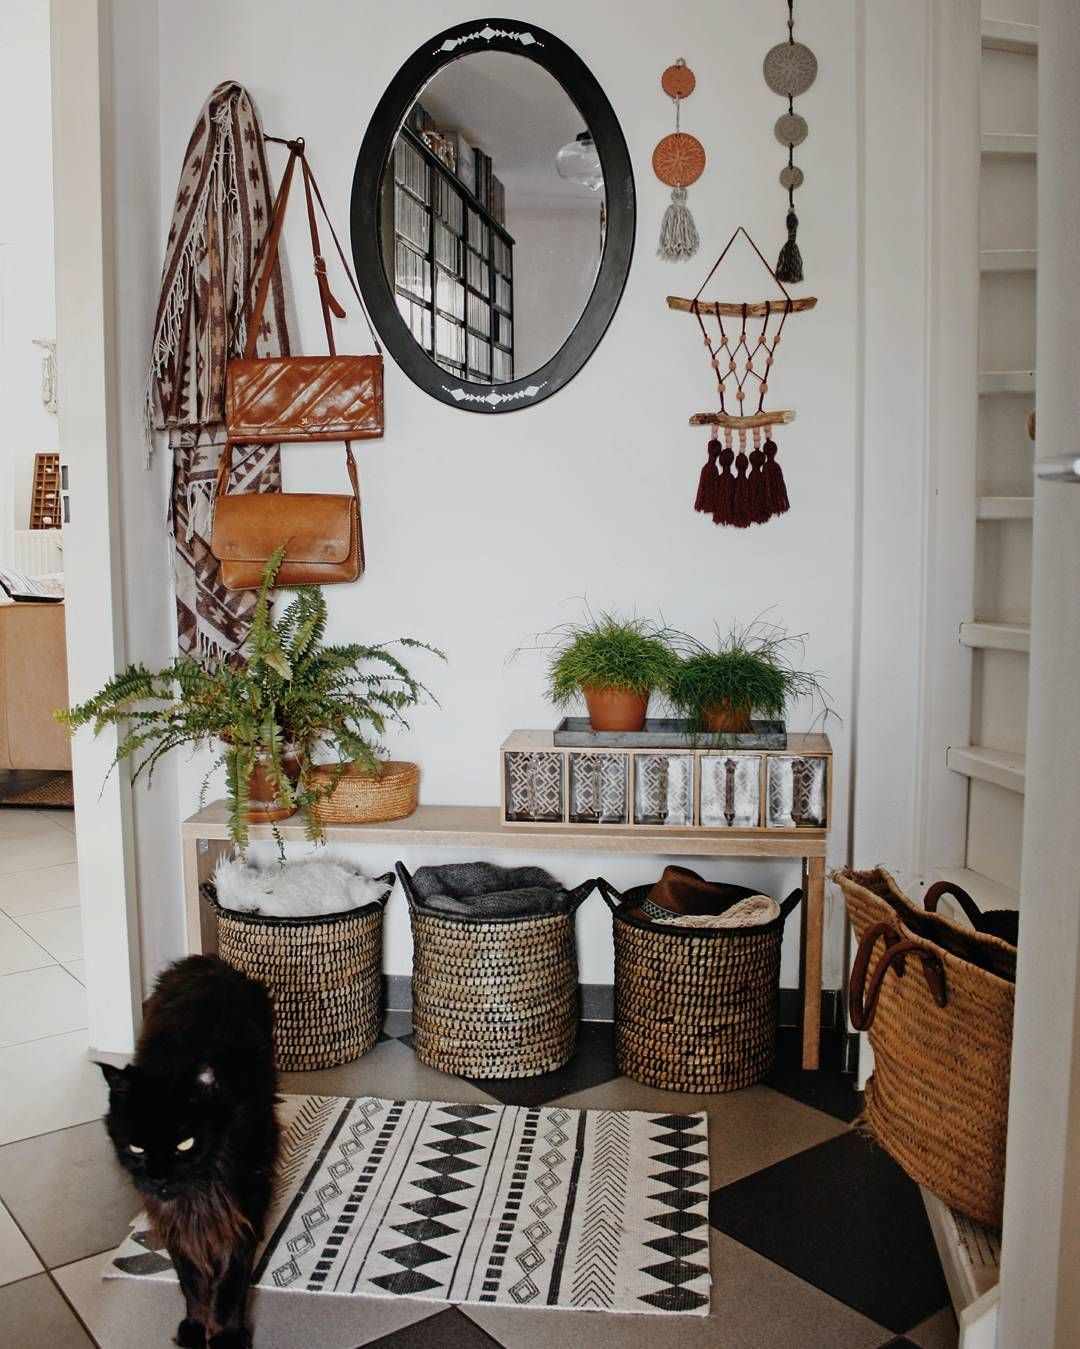 Bohemian Styled Entry Boho Spaces Baskets Wall Hangings Vintage Finds House Decor